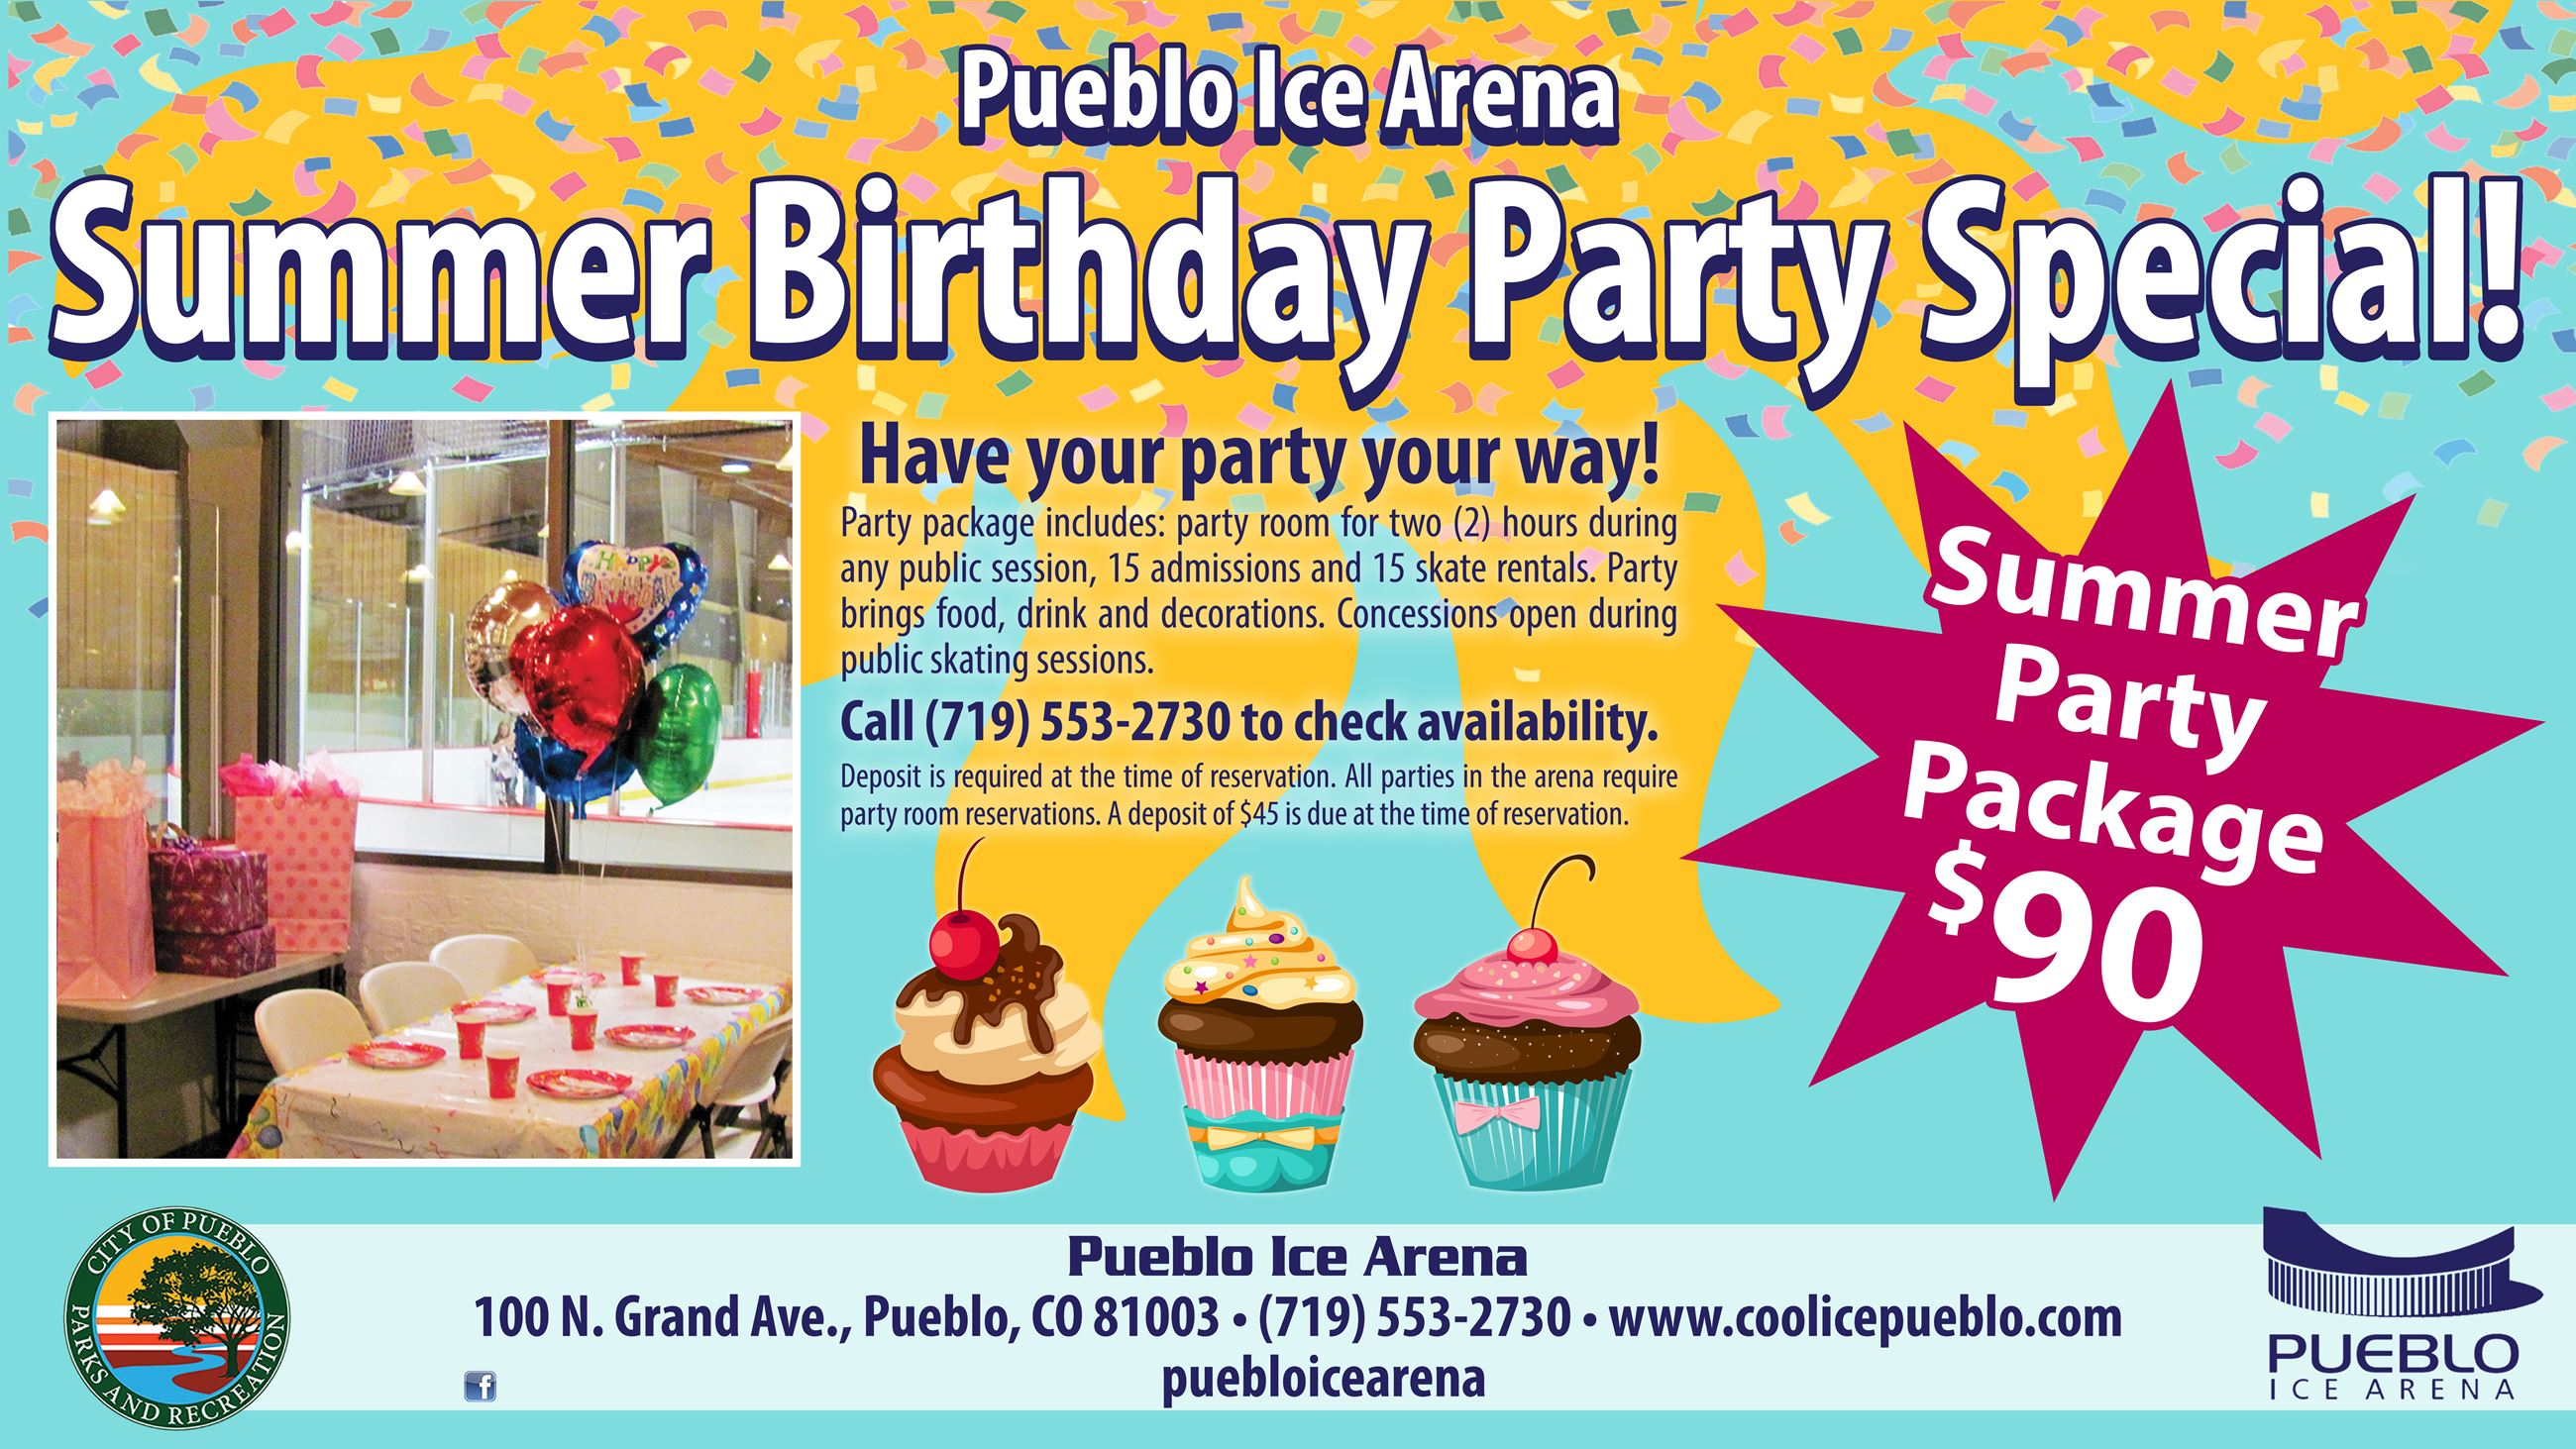 Image of Ice Arena Summer Birthday Special